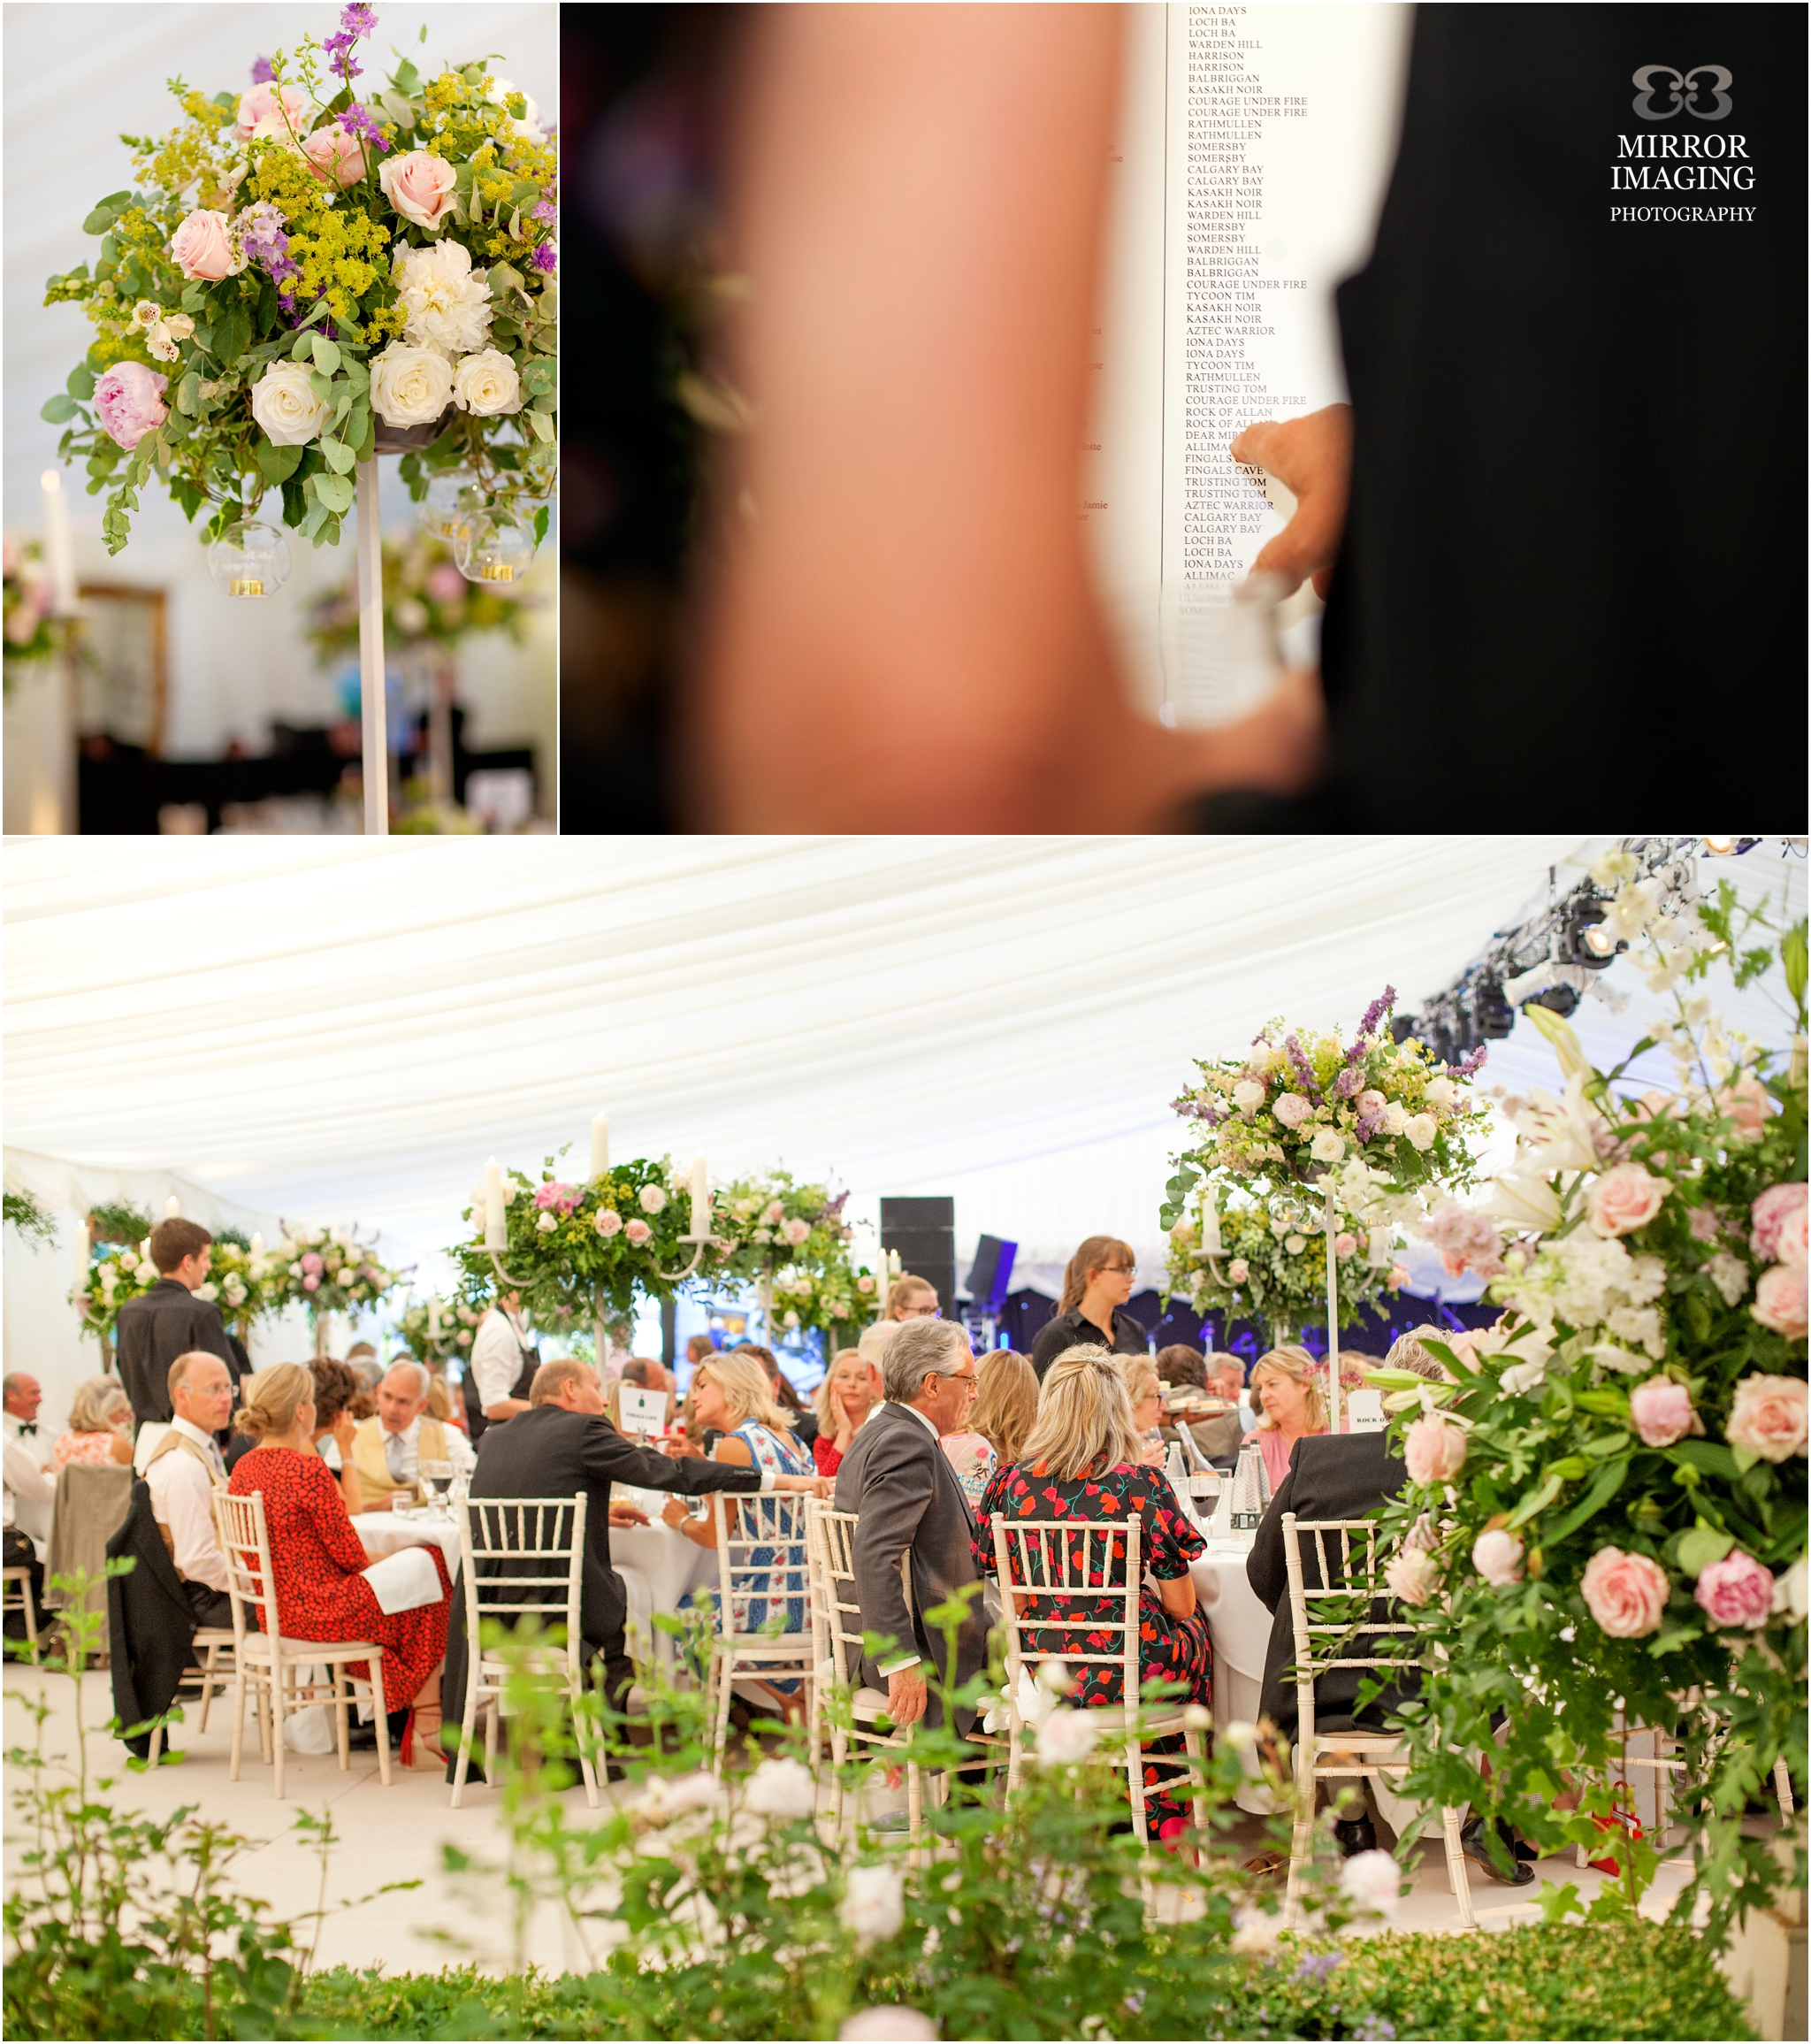 wedding_photographers_nottingham_061.jpg